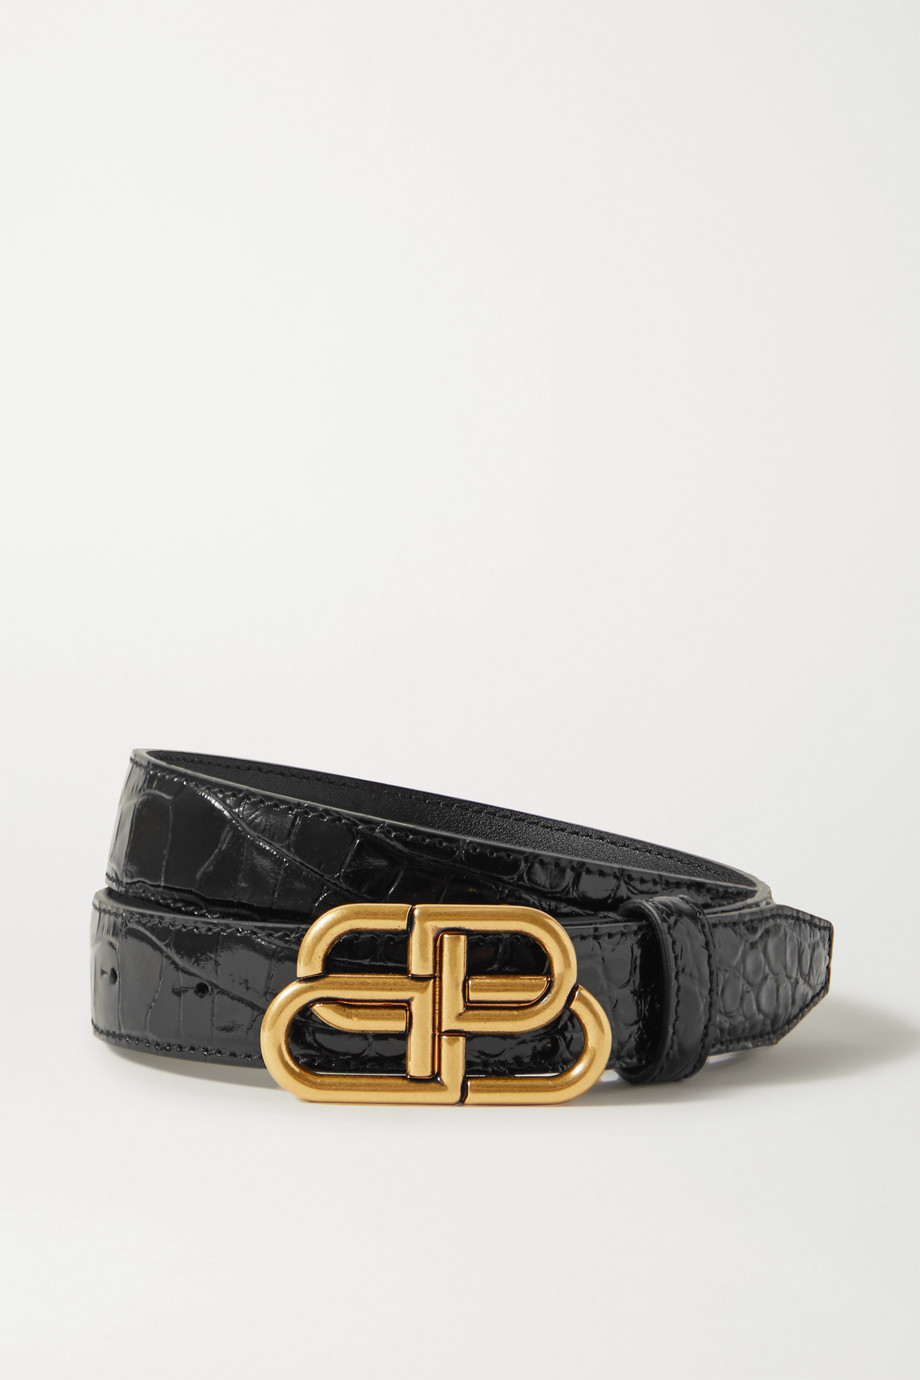 BALENCIAGA BB croc-effect leather belt